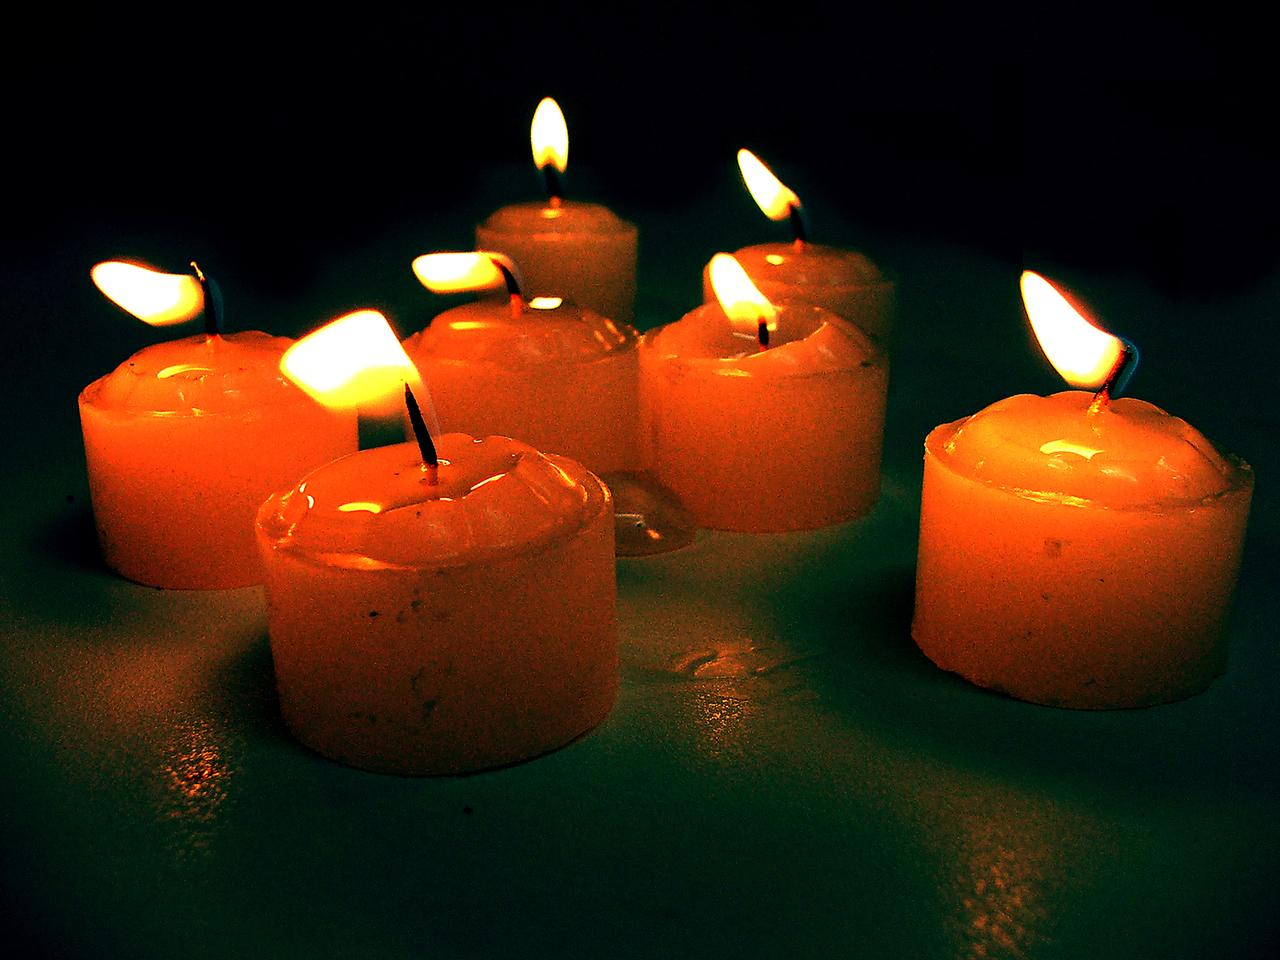 A group of lit candles  Description automatically generated with medium confidence